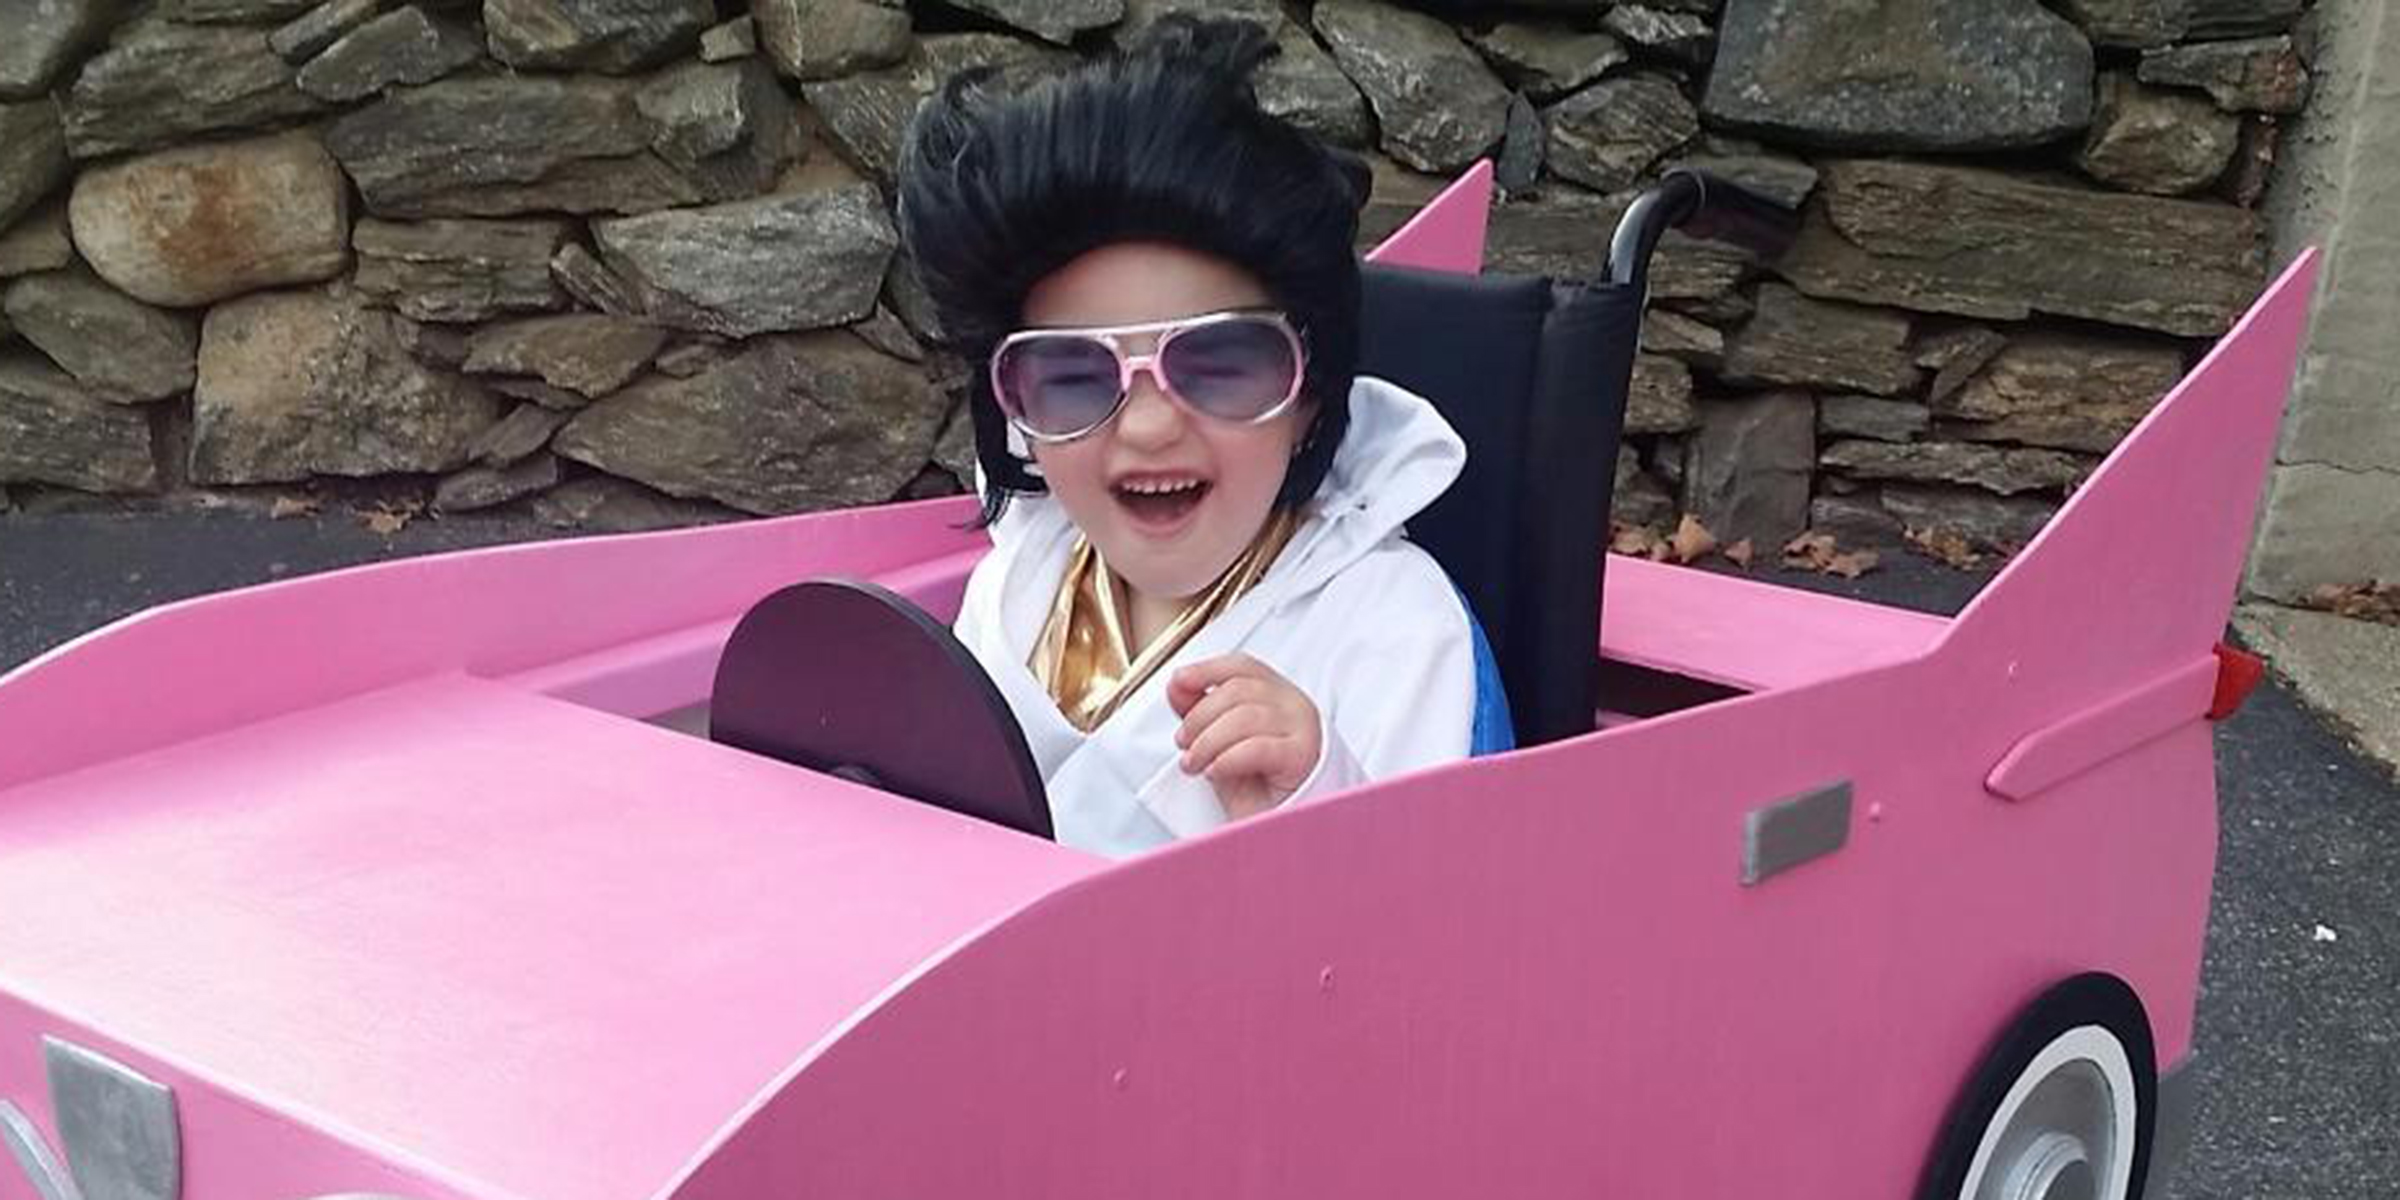 'Most positive kid' with terminal illness has epic wheelchair Halloween costumes